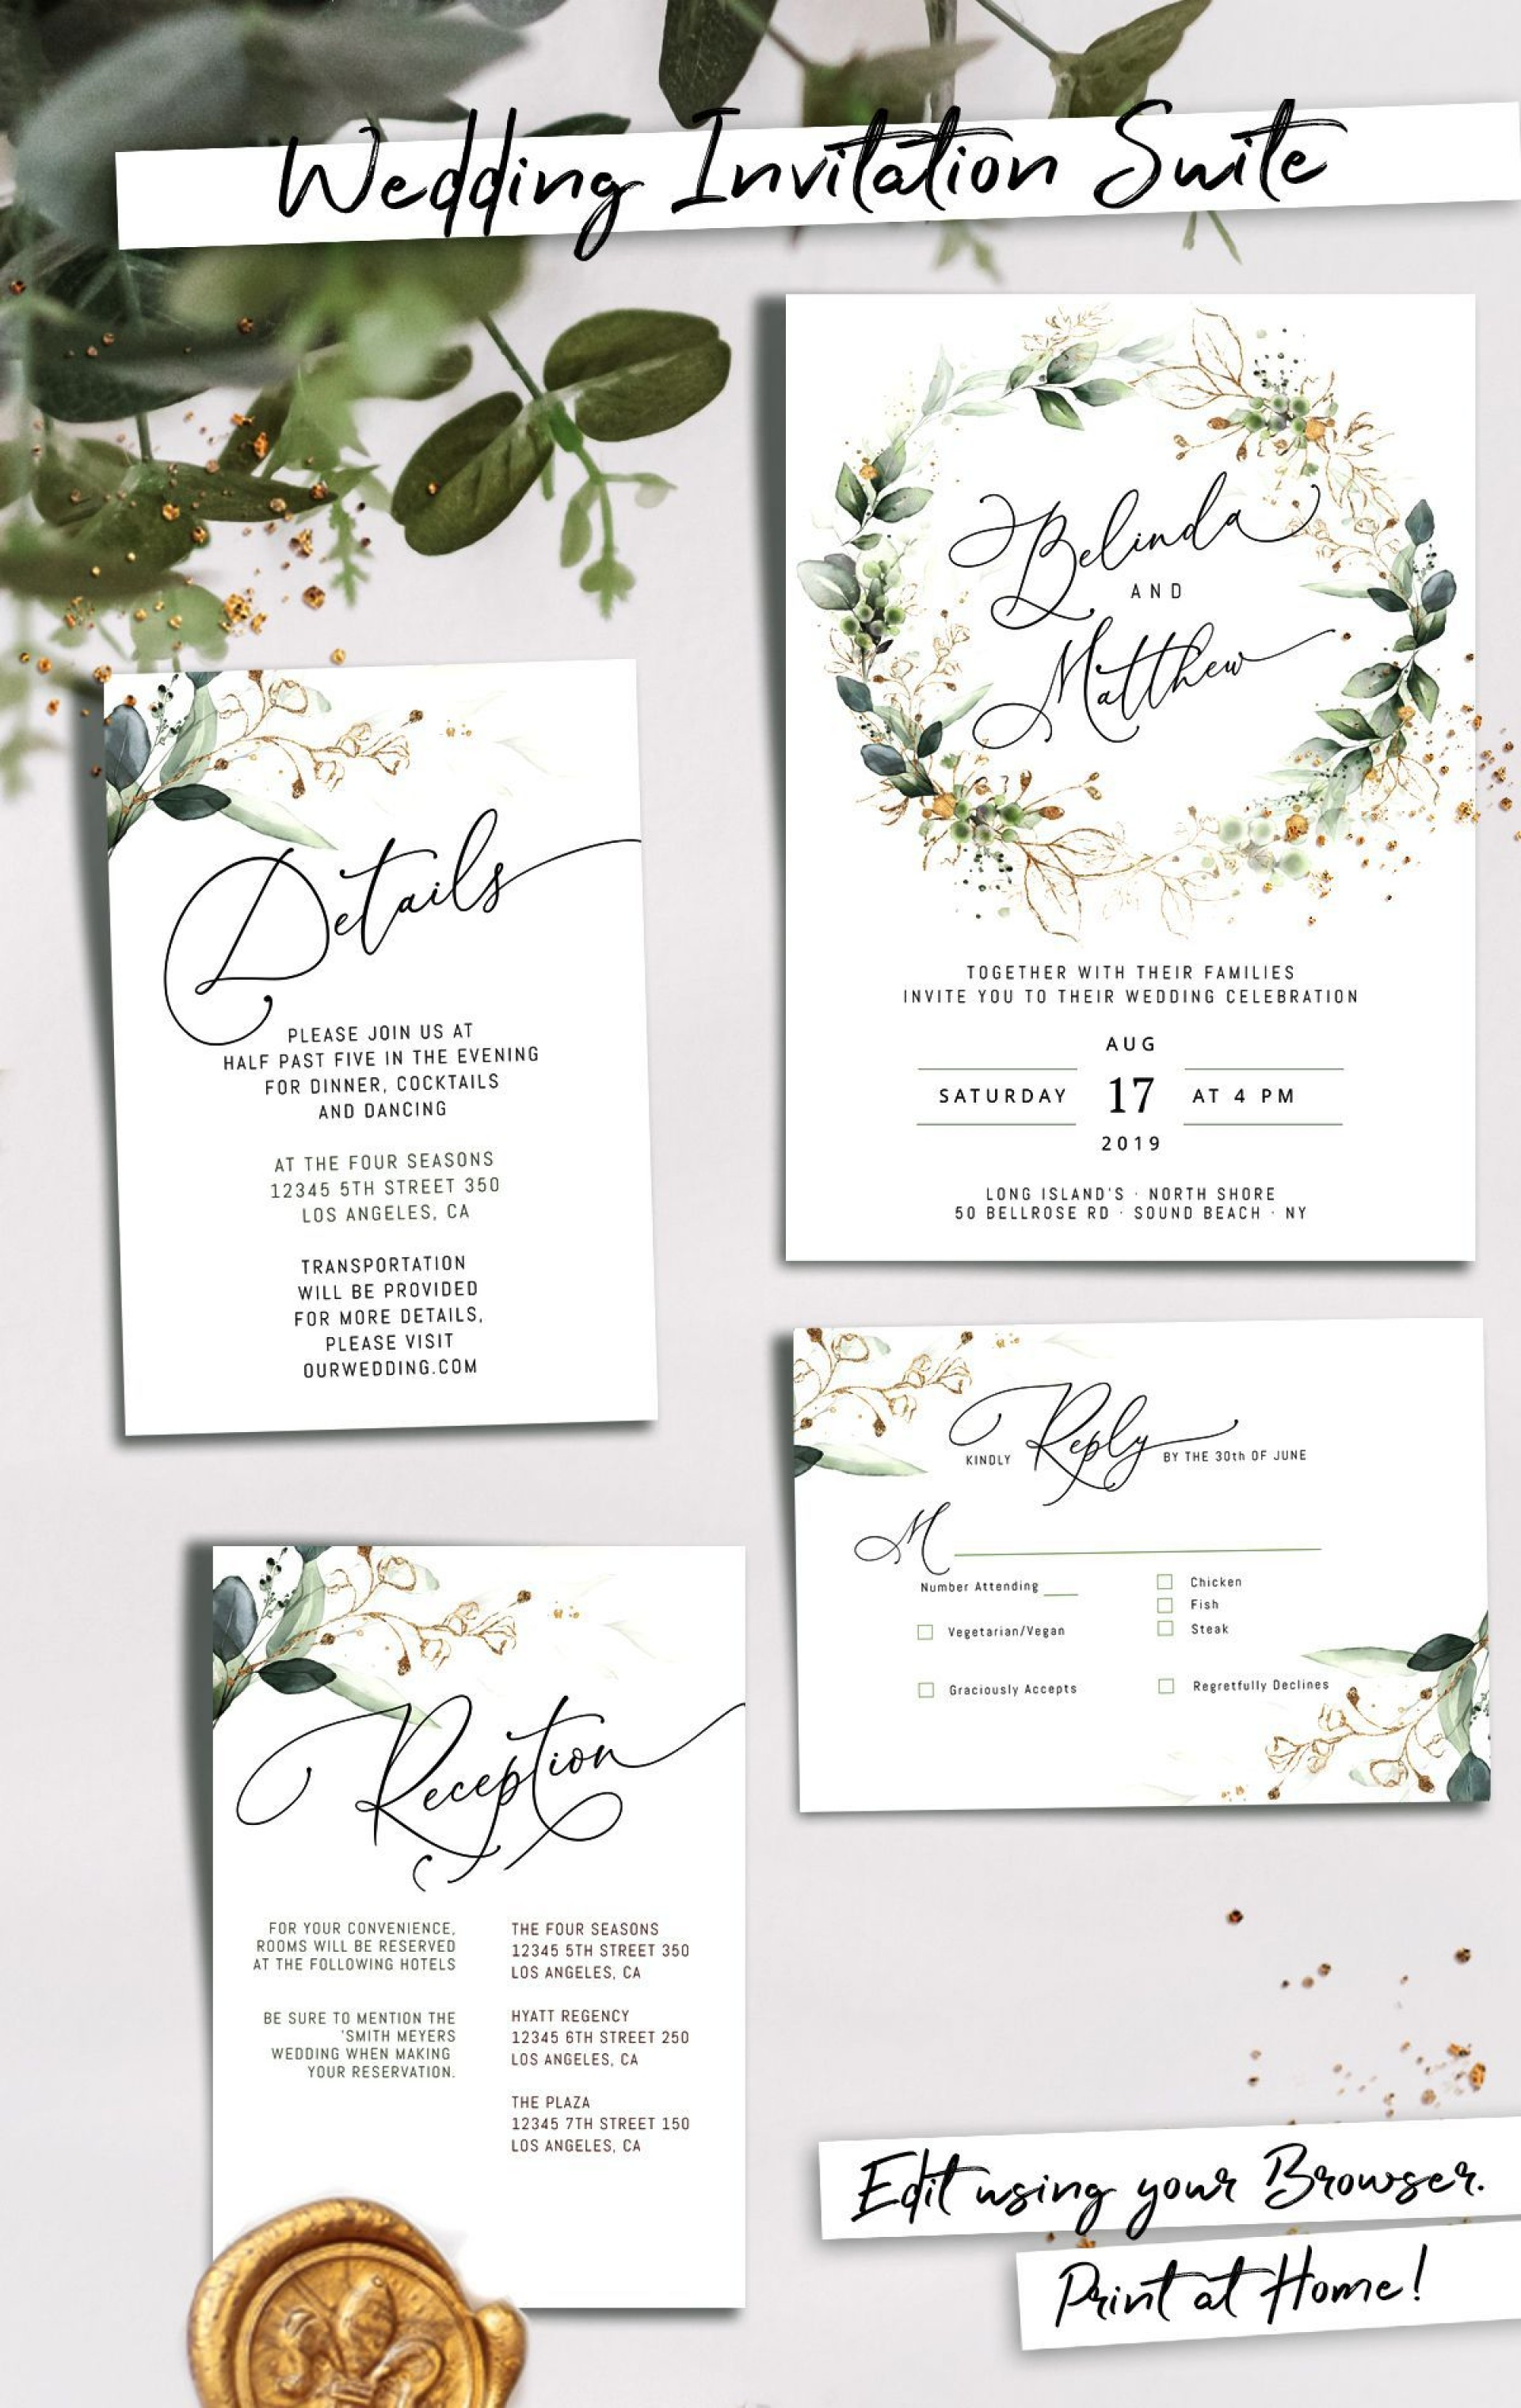 005 Amazing Editable Wedding Invitation Template High Def  Templates Tamil Card Free Download Psd Online1920